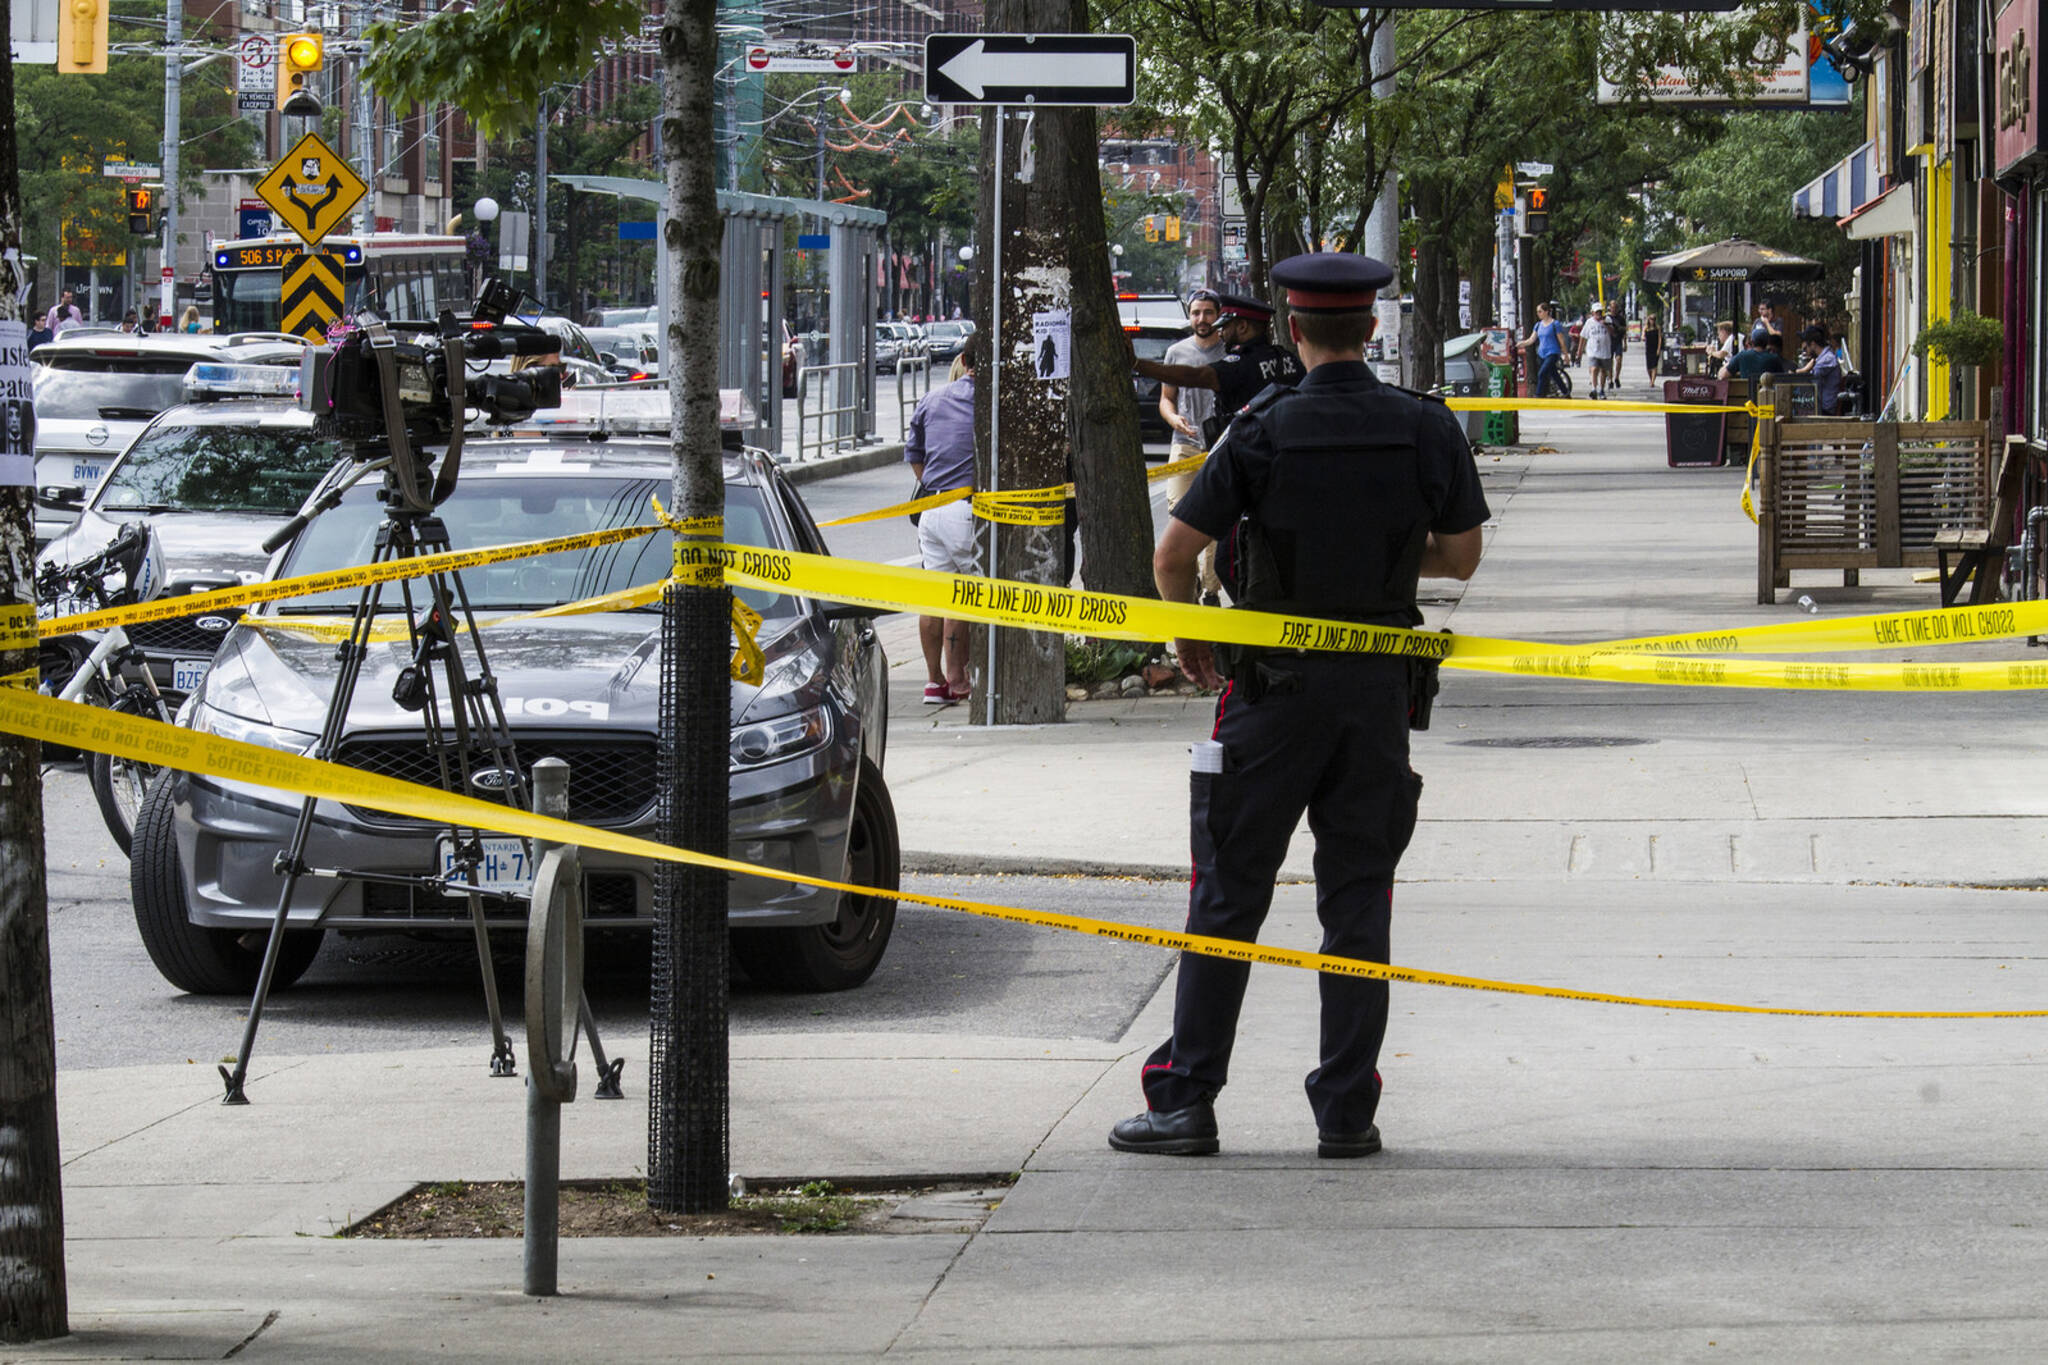 Toronto's homicide rate is now higher than New York's